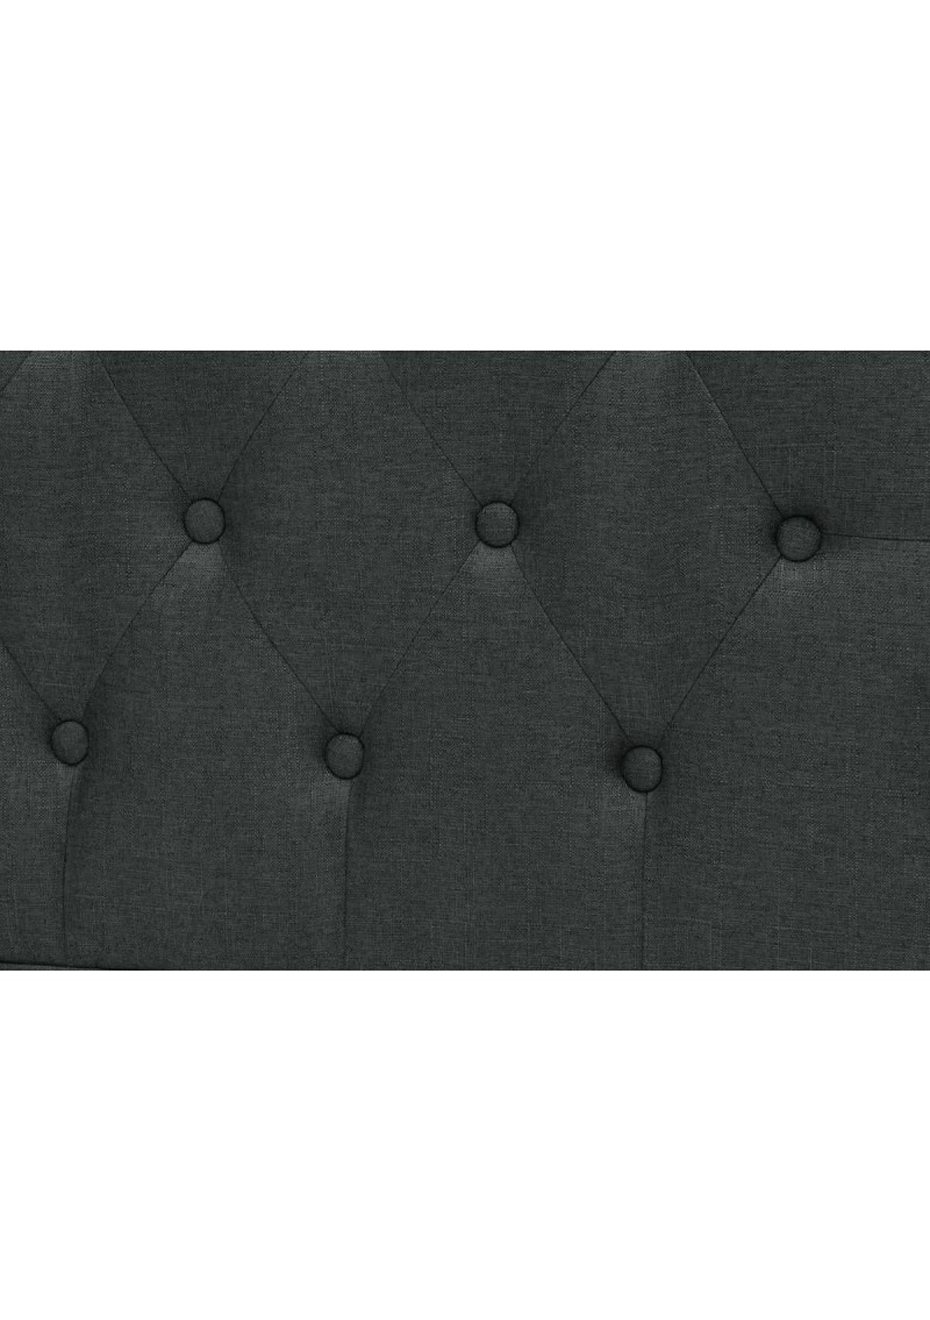 Super King Stand- Fabric Headboard - Charcoal